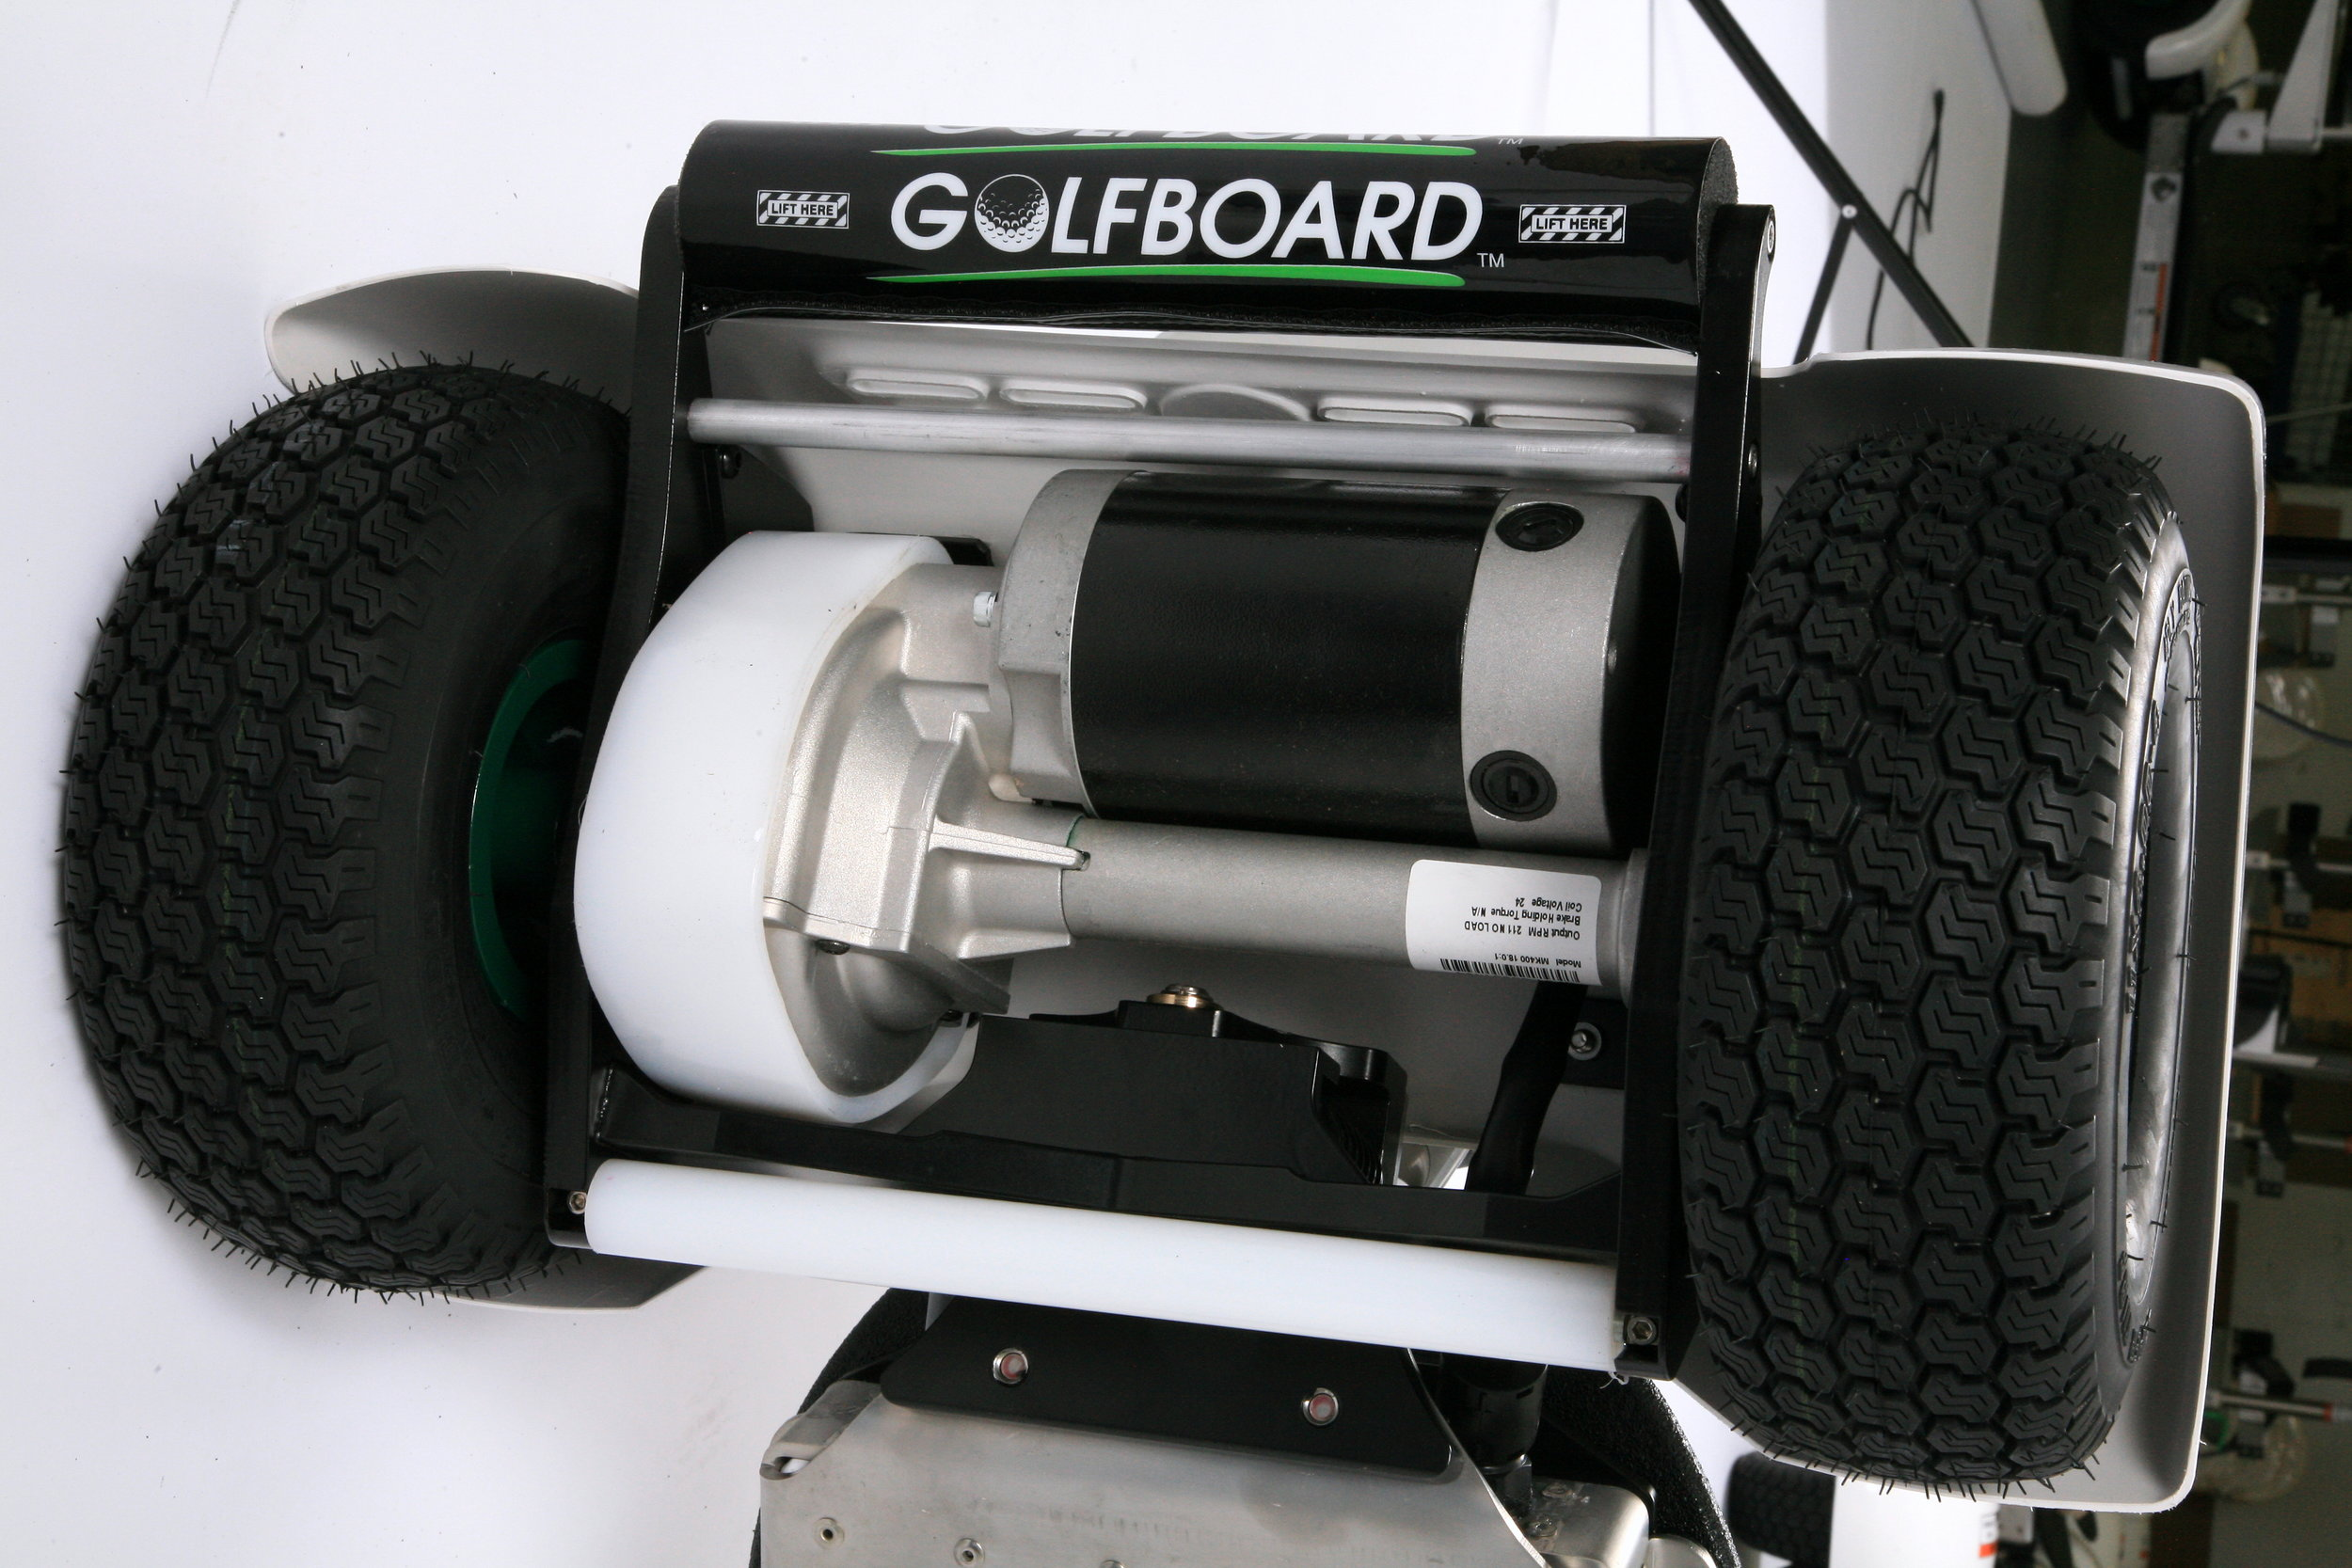 Four-wheel posi-drivetrain with integrated motor and gearbox assembly